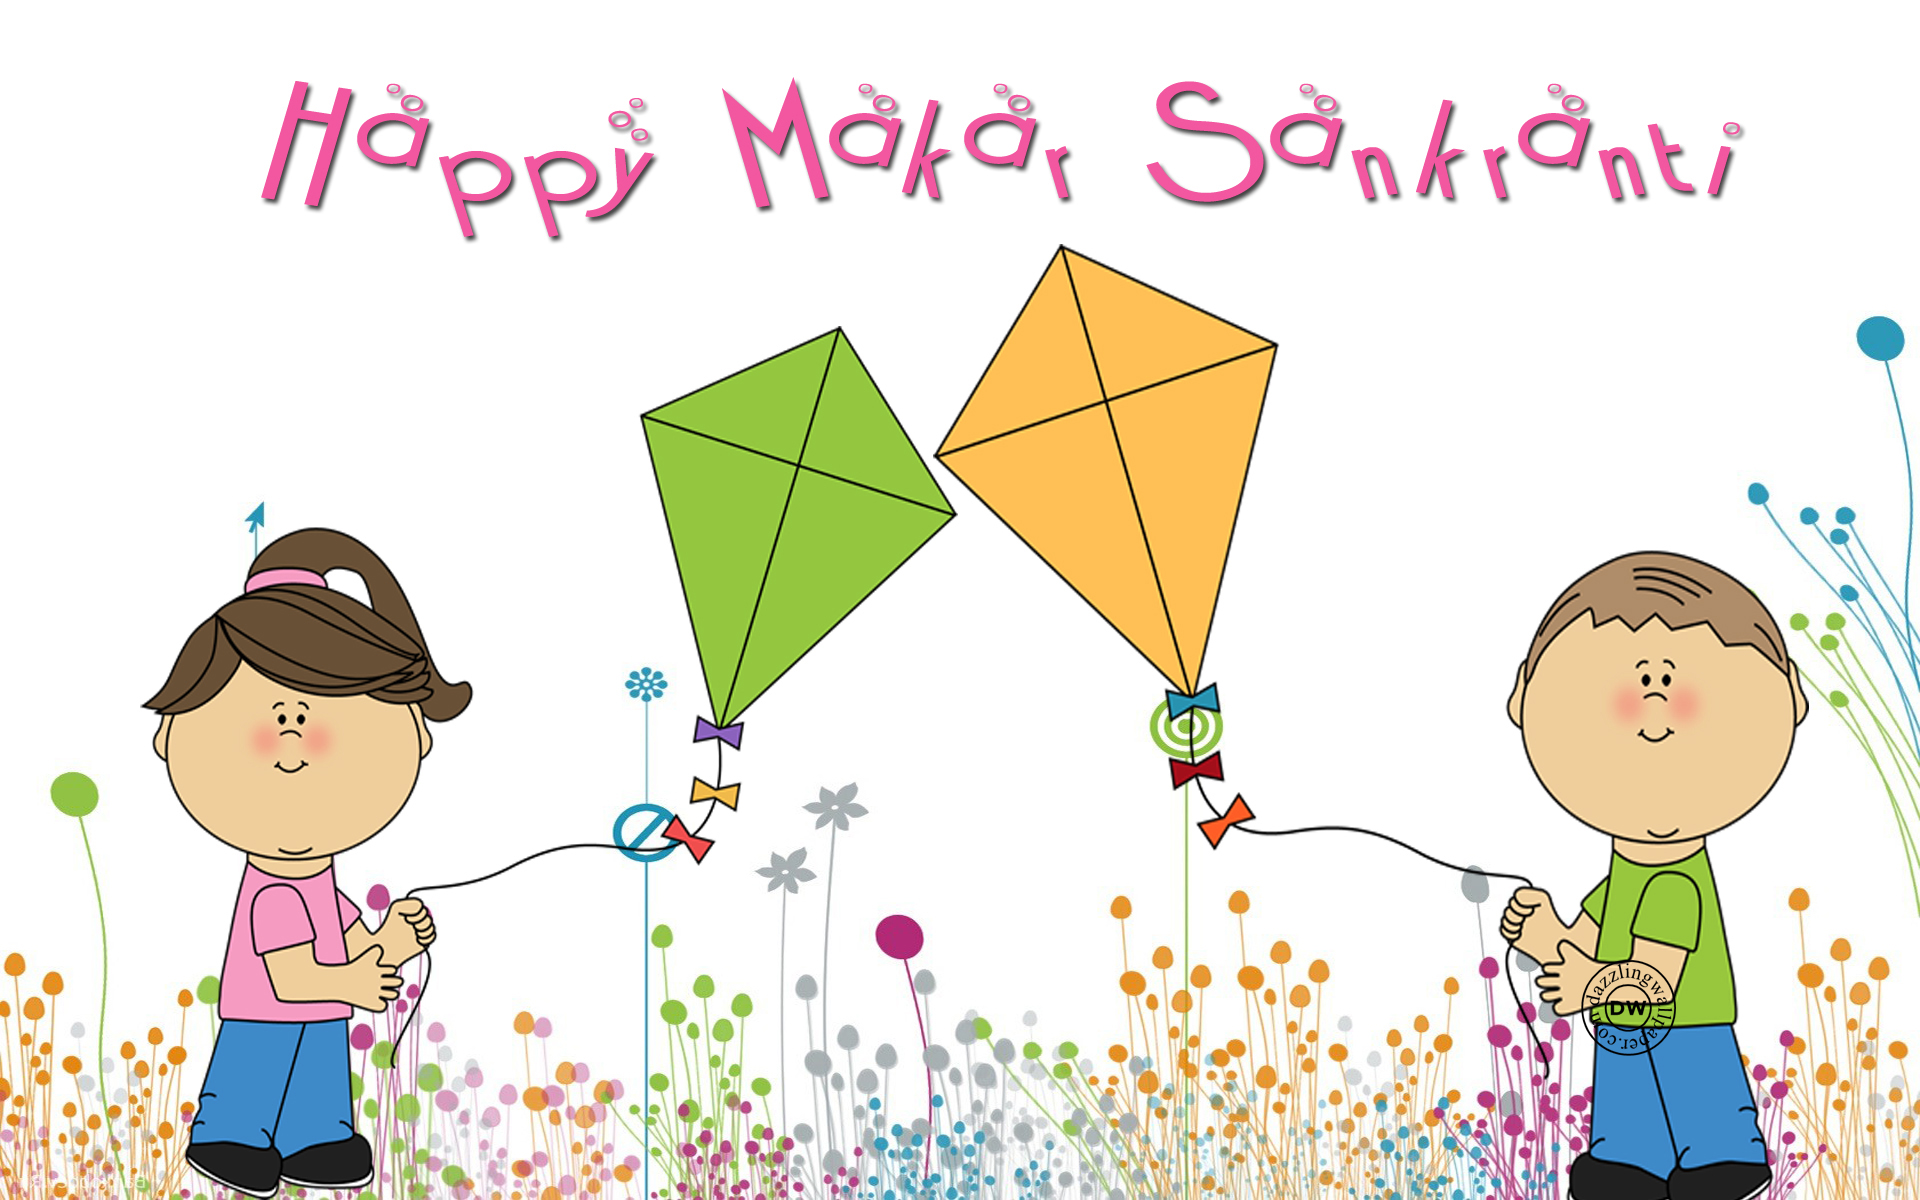 makar sankranti Happy uttrayan / kite day / makar sankranti images 2018, gif, hd wallpapers, hd pics & photos for whatsapp dp & profile 2018 to update it on 14th january.